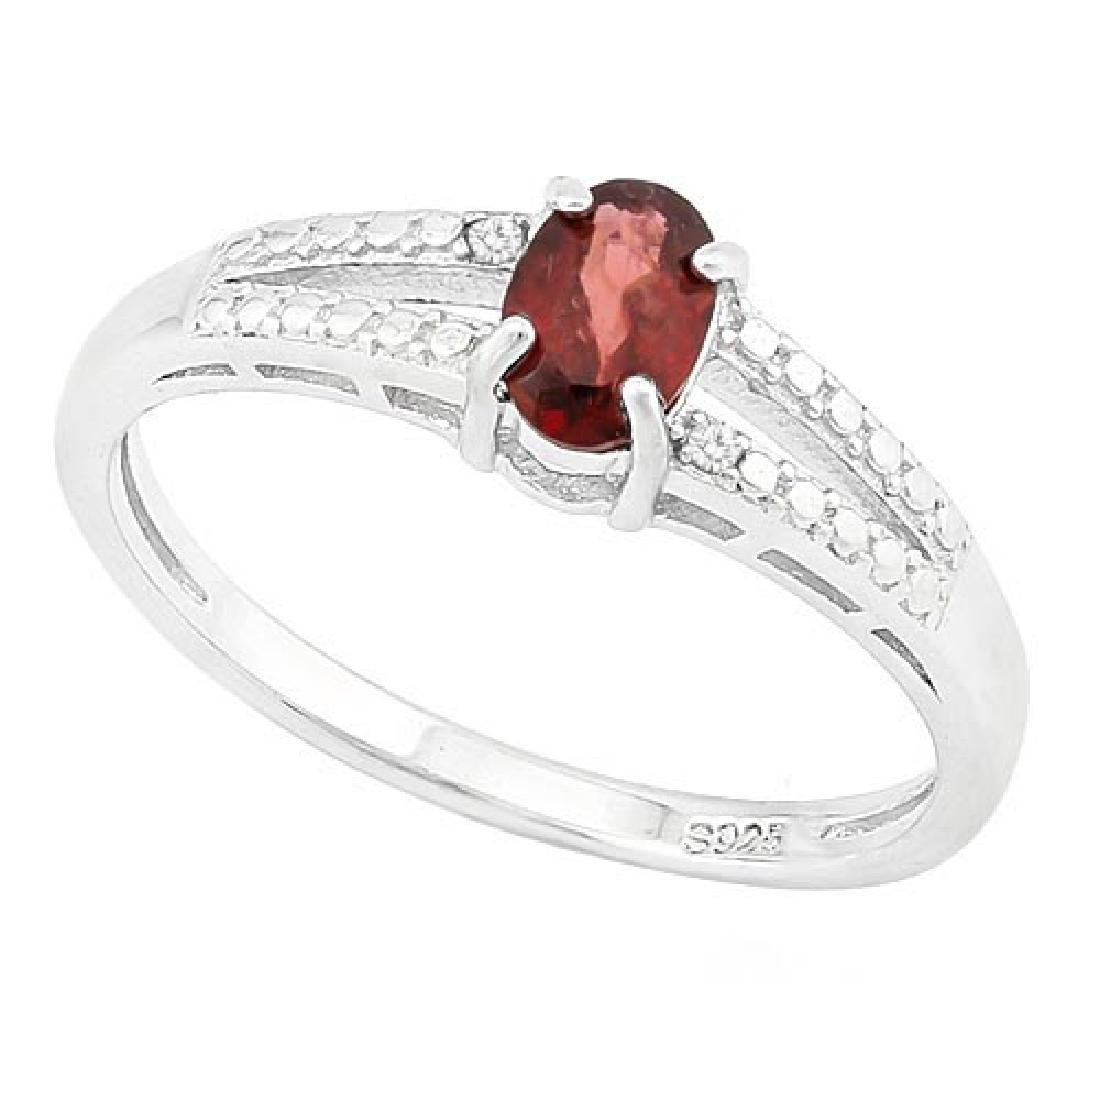 1/2 CARAT GARNET & GENUINE DIAMONDS 925 STERLING SILVER